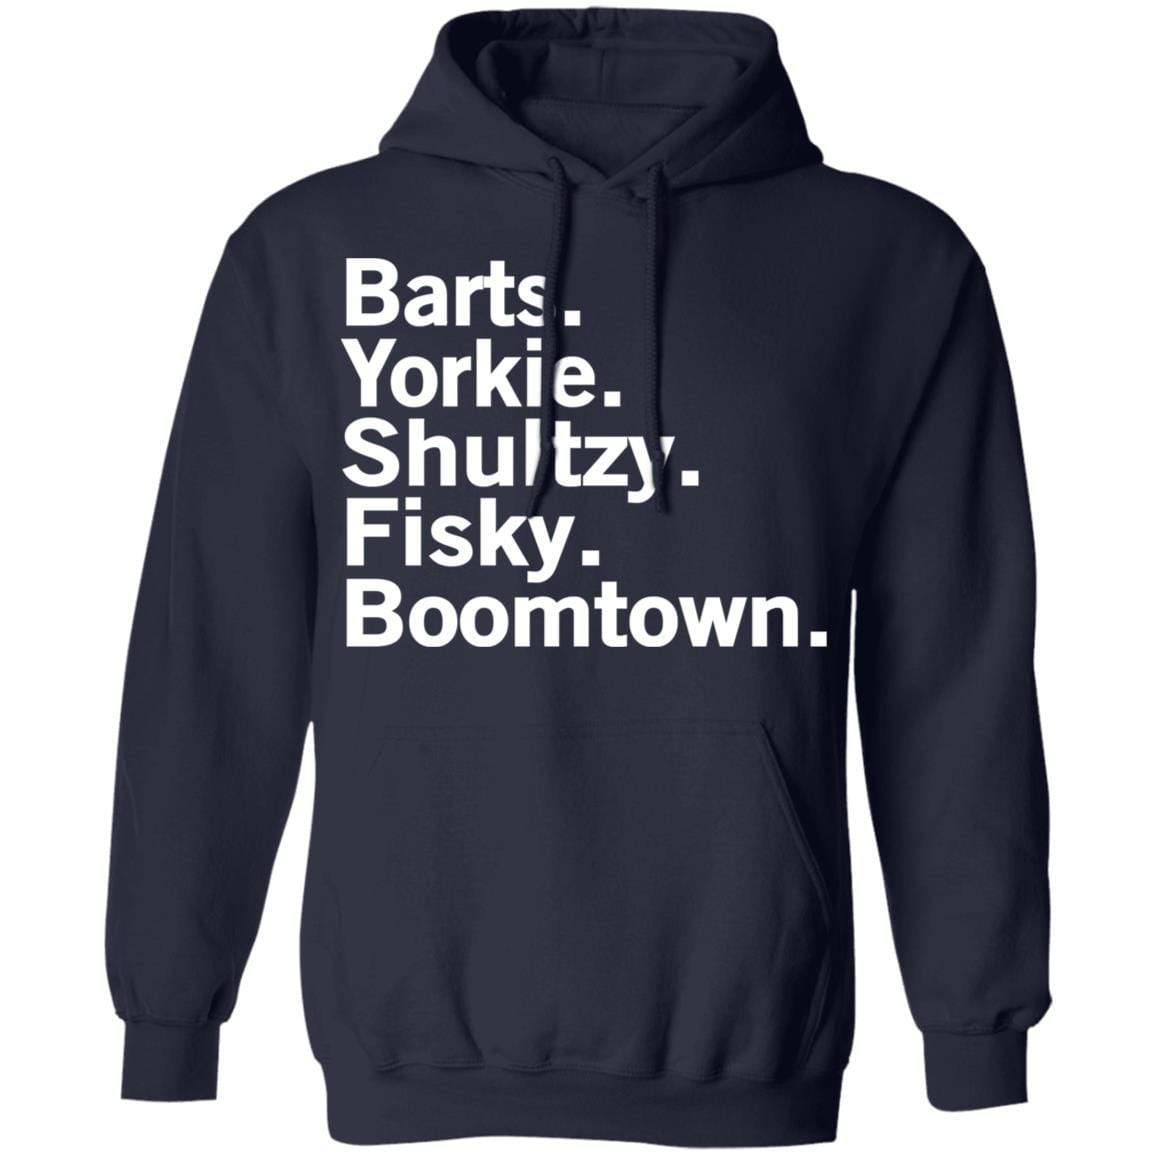 Barts Yorkie Shultzy Fisky Boomtown T-Shirts, Hoodies 541-4742-86894760-23135 - Tee Ript